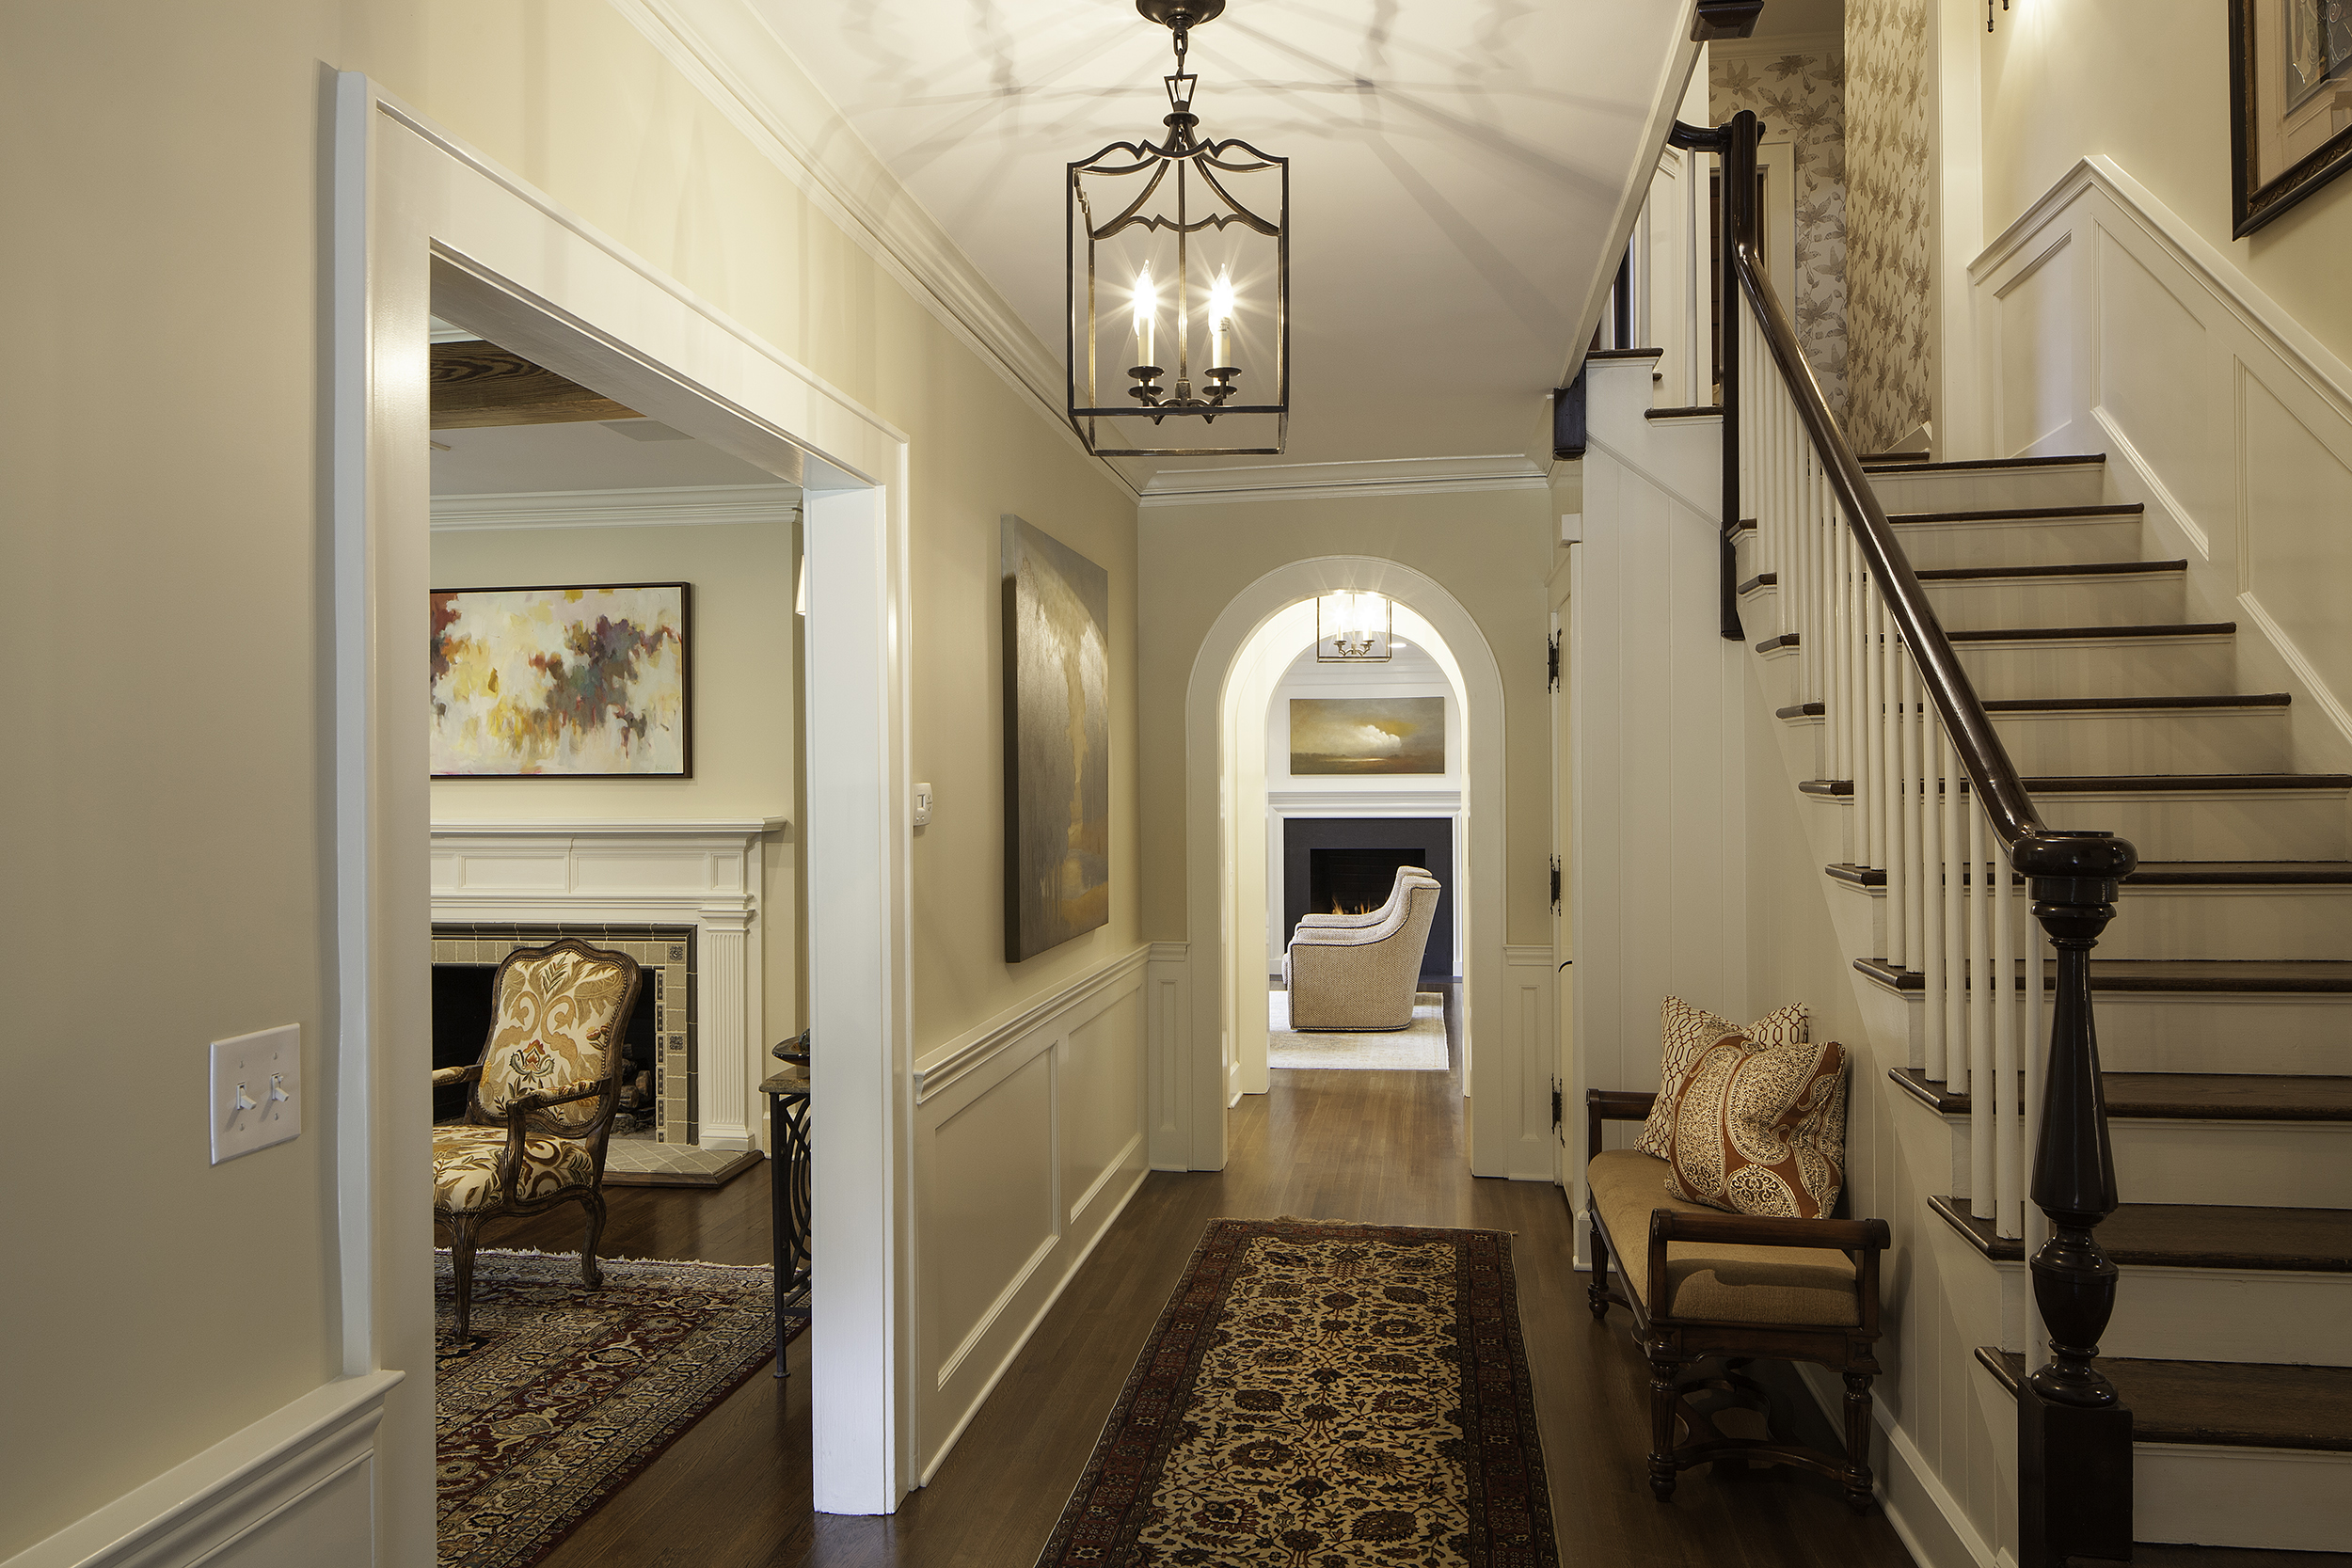 Stairway hall after renovation, with new moldings and trim detail.  Interior Furnishings by Ashlee Anthony Design